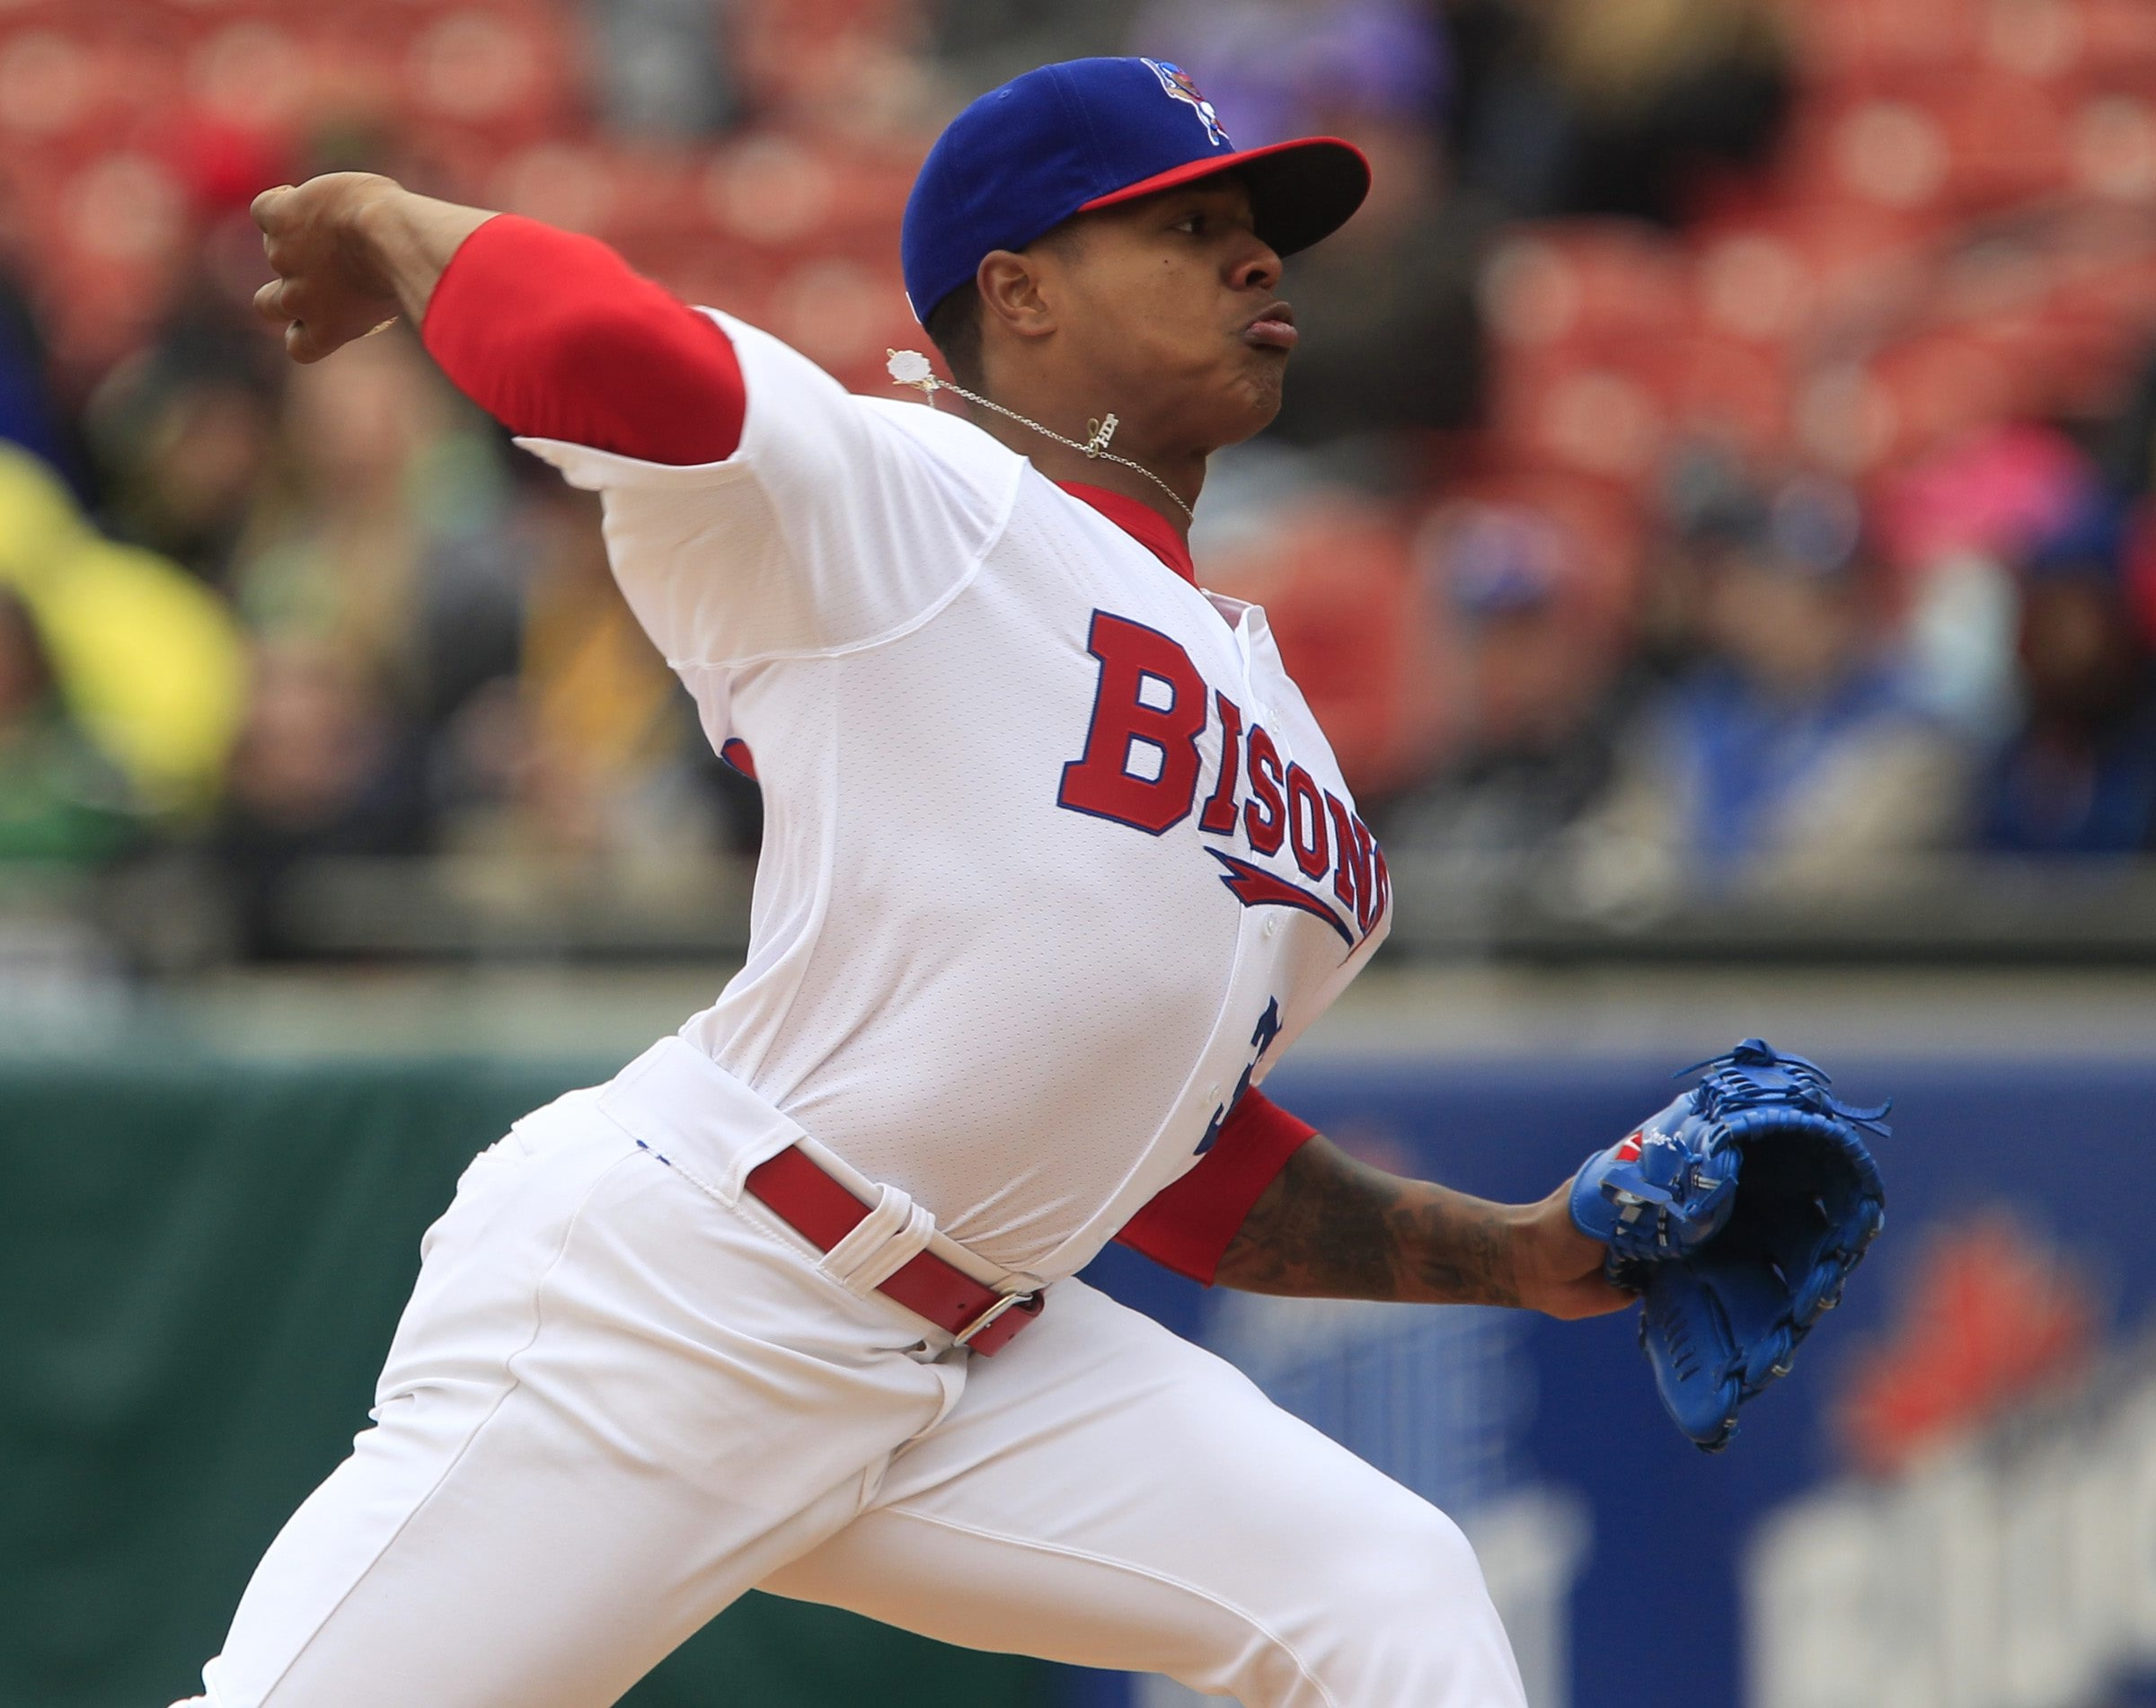 Bisons pitcher Marcus Stroman tossed a no-hit six-inning gem Tuesday against Louisville, including 10 strikeouts and only one walk.